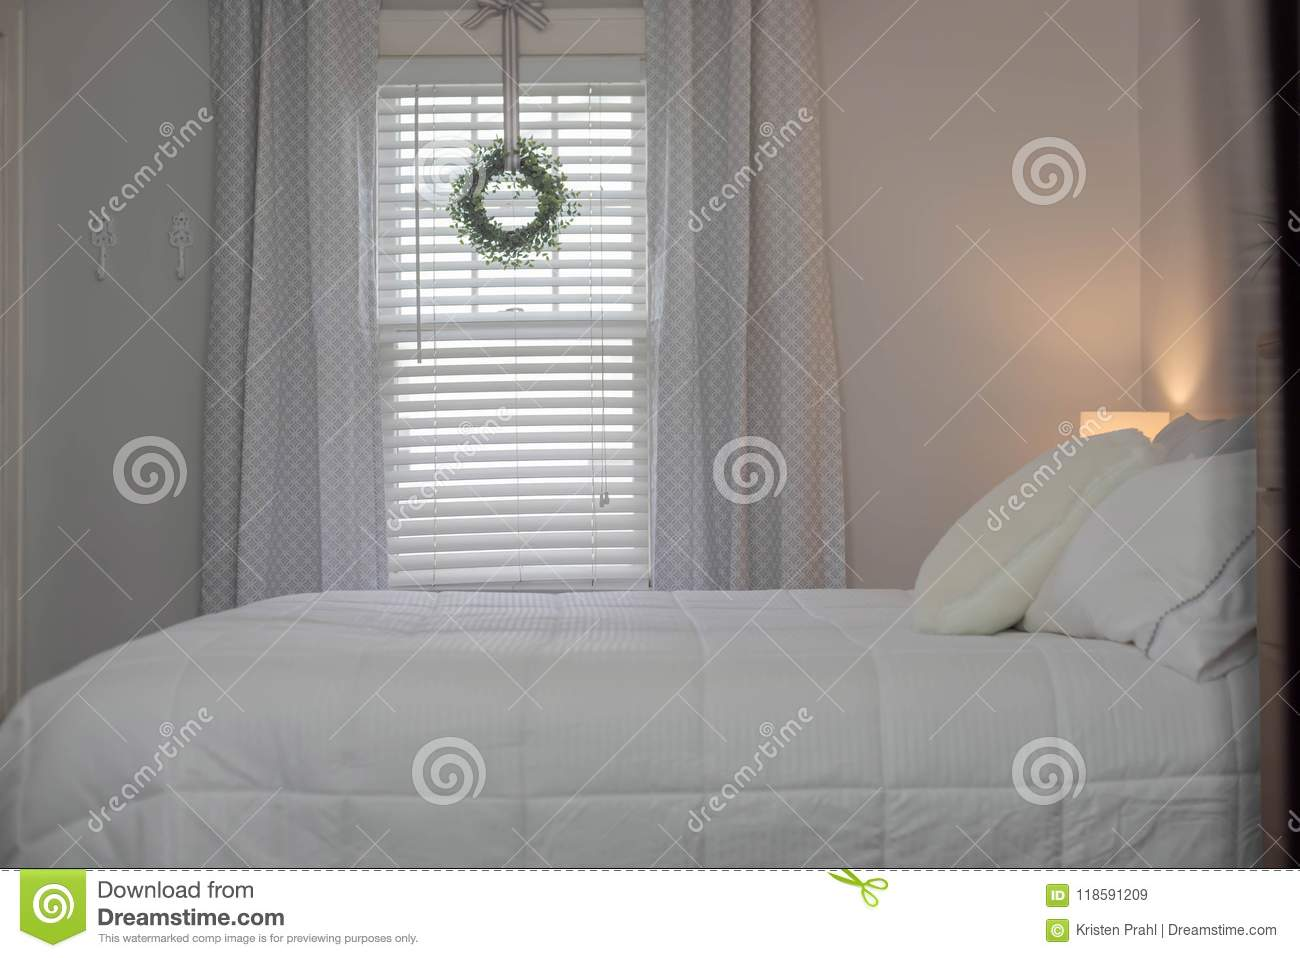 Clean Fresh Bedroom In Neutral Gray And White Palette Stock Image